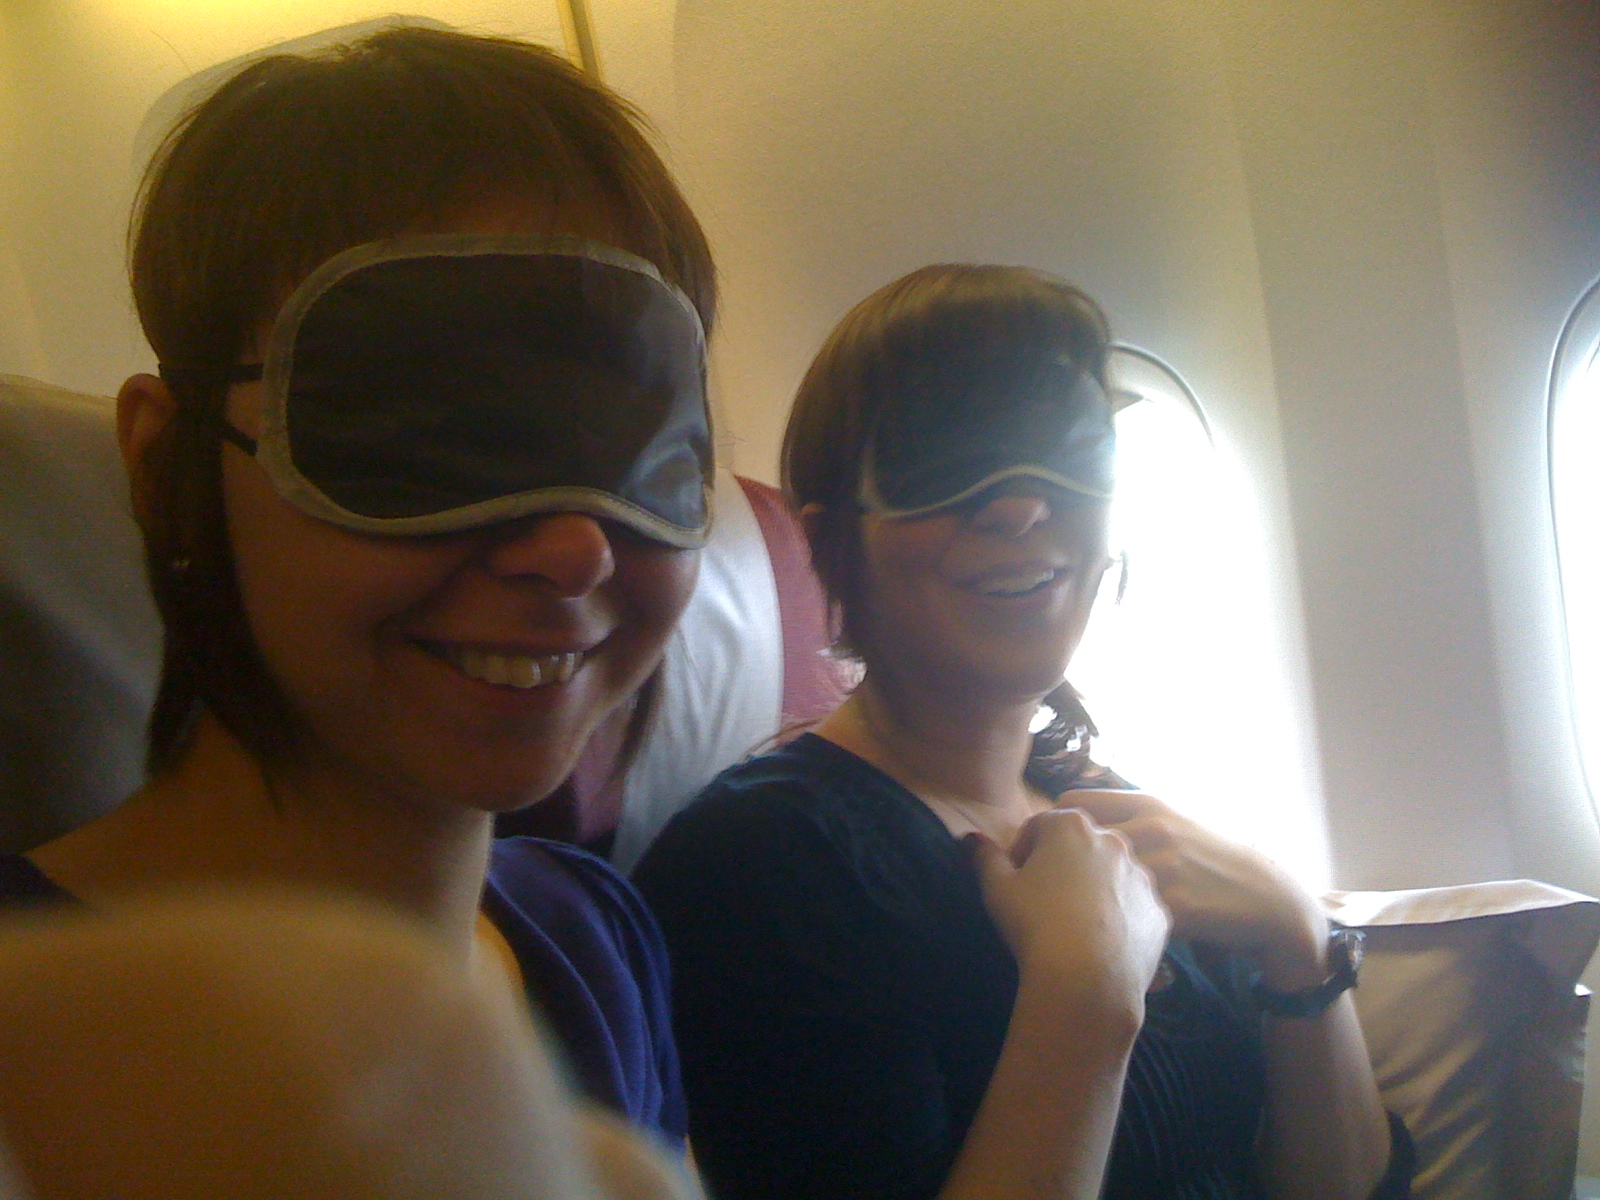 The Jess Squared with sleepy-time masks on.